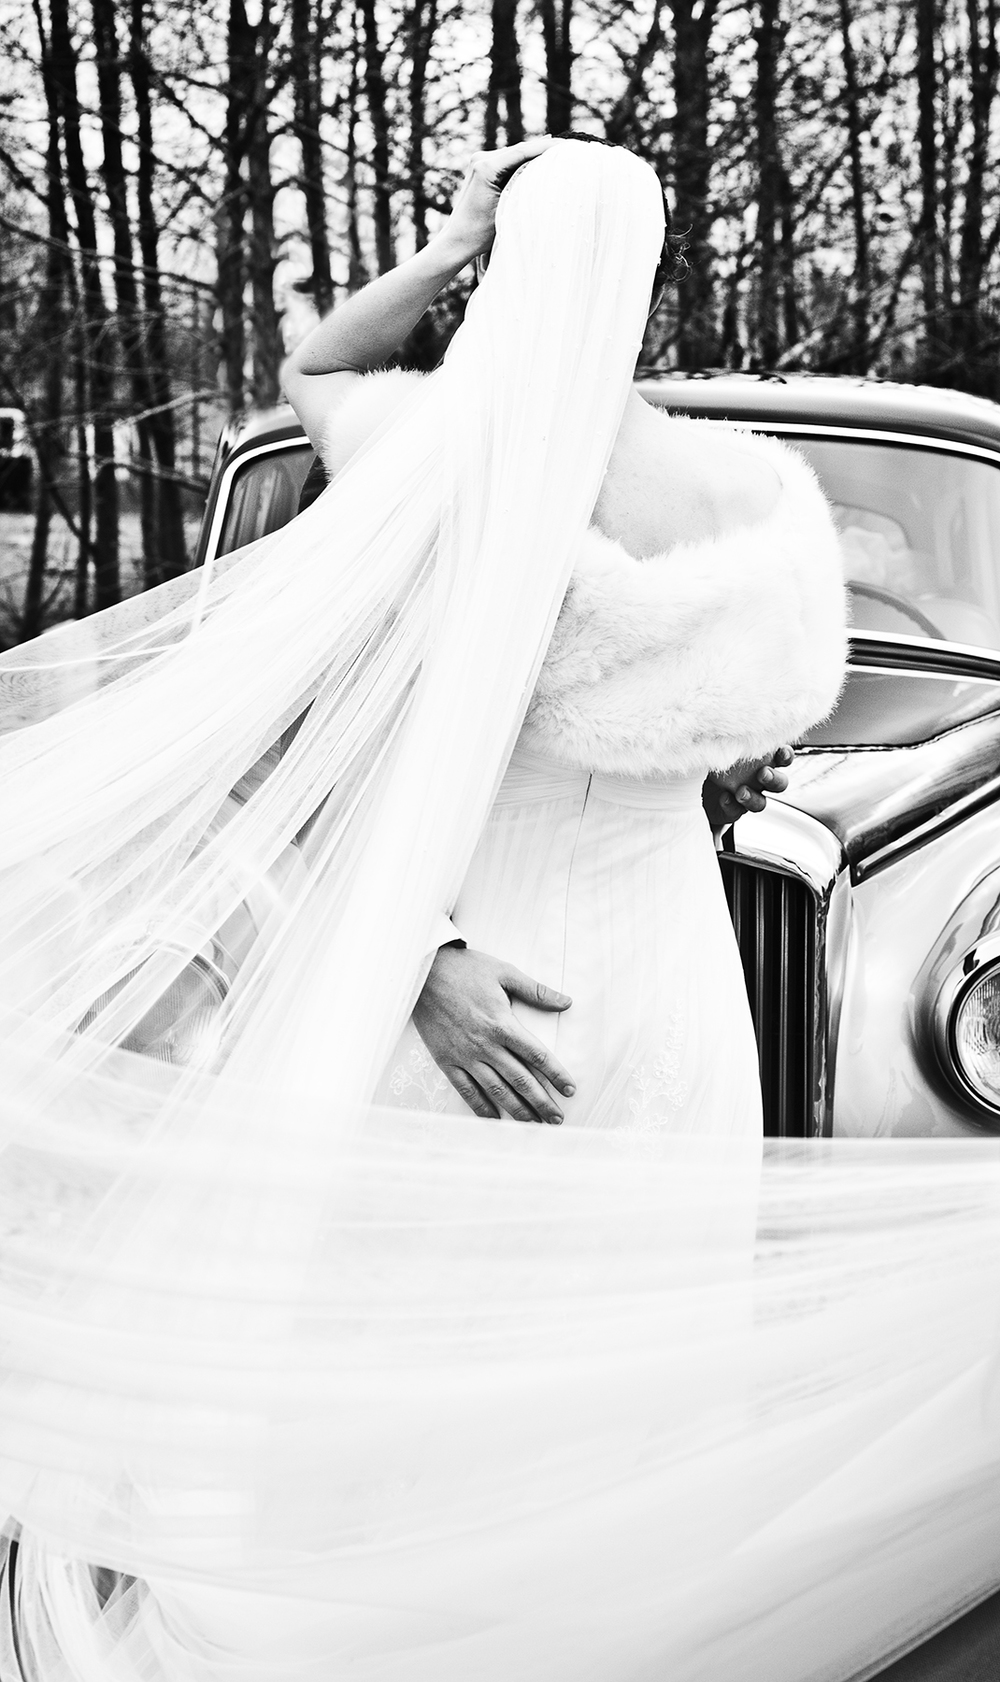 Here are images I shot while assisting a photographer during abeautiful Belgian wedding.